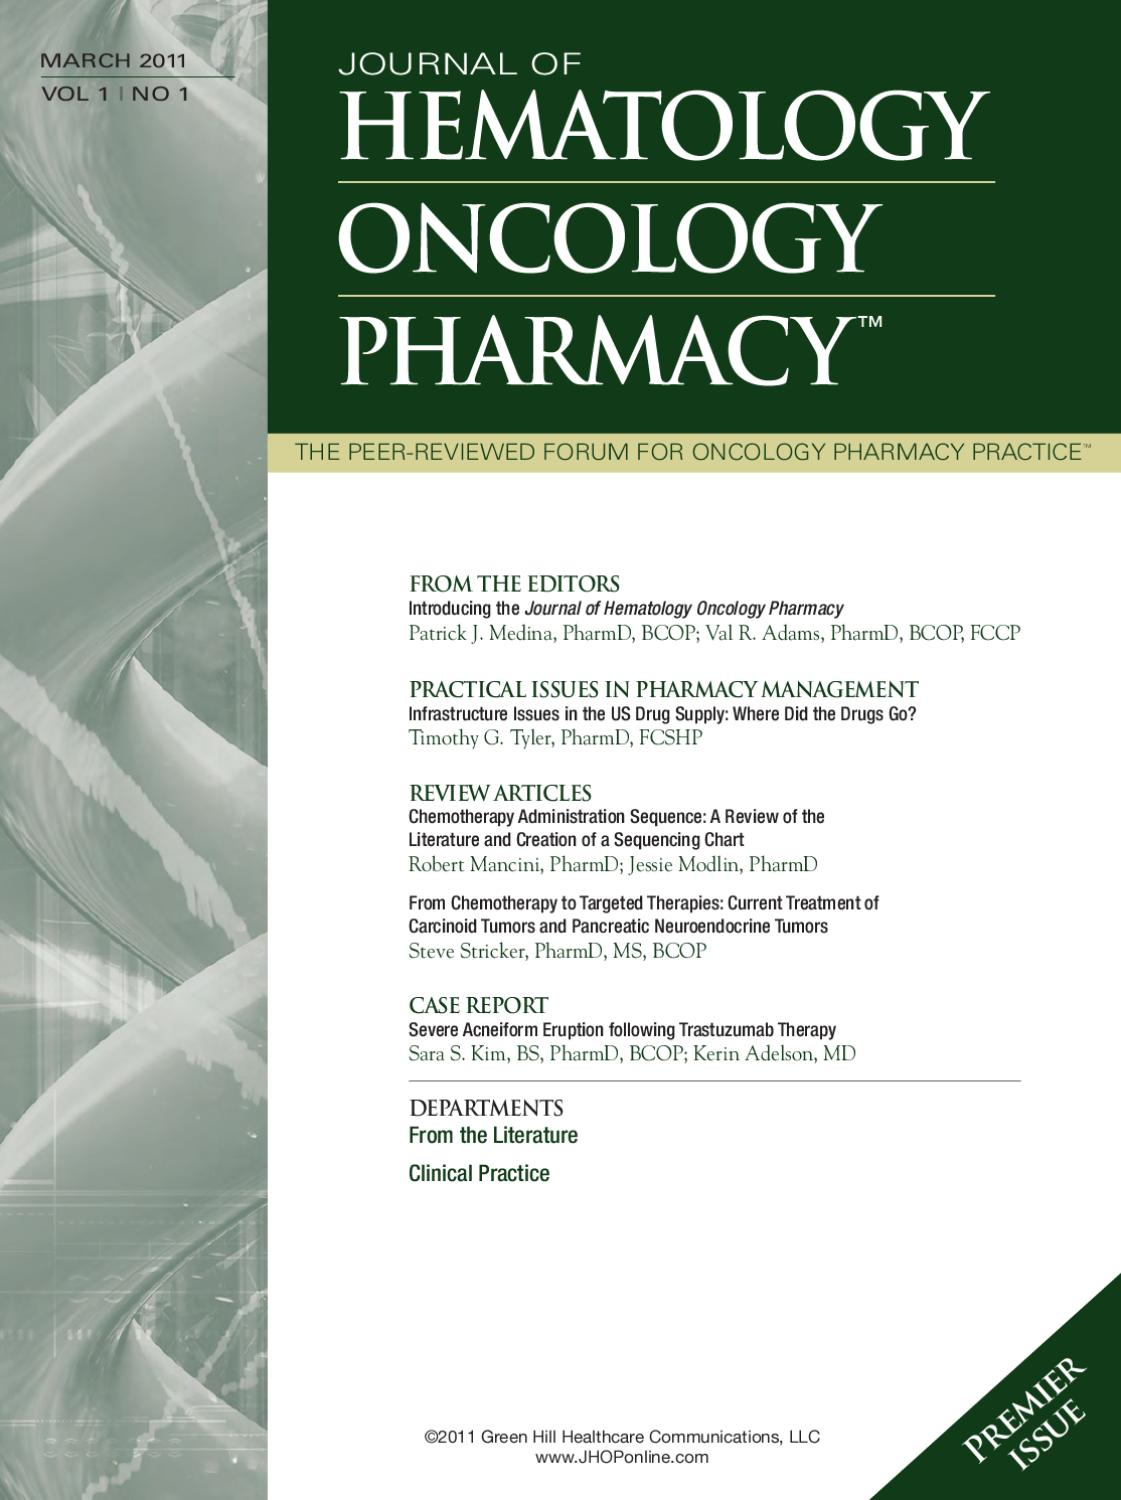 Journal of Hematology Oncology Pharmacy by The Oncology